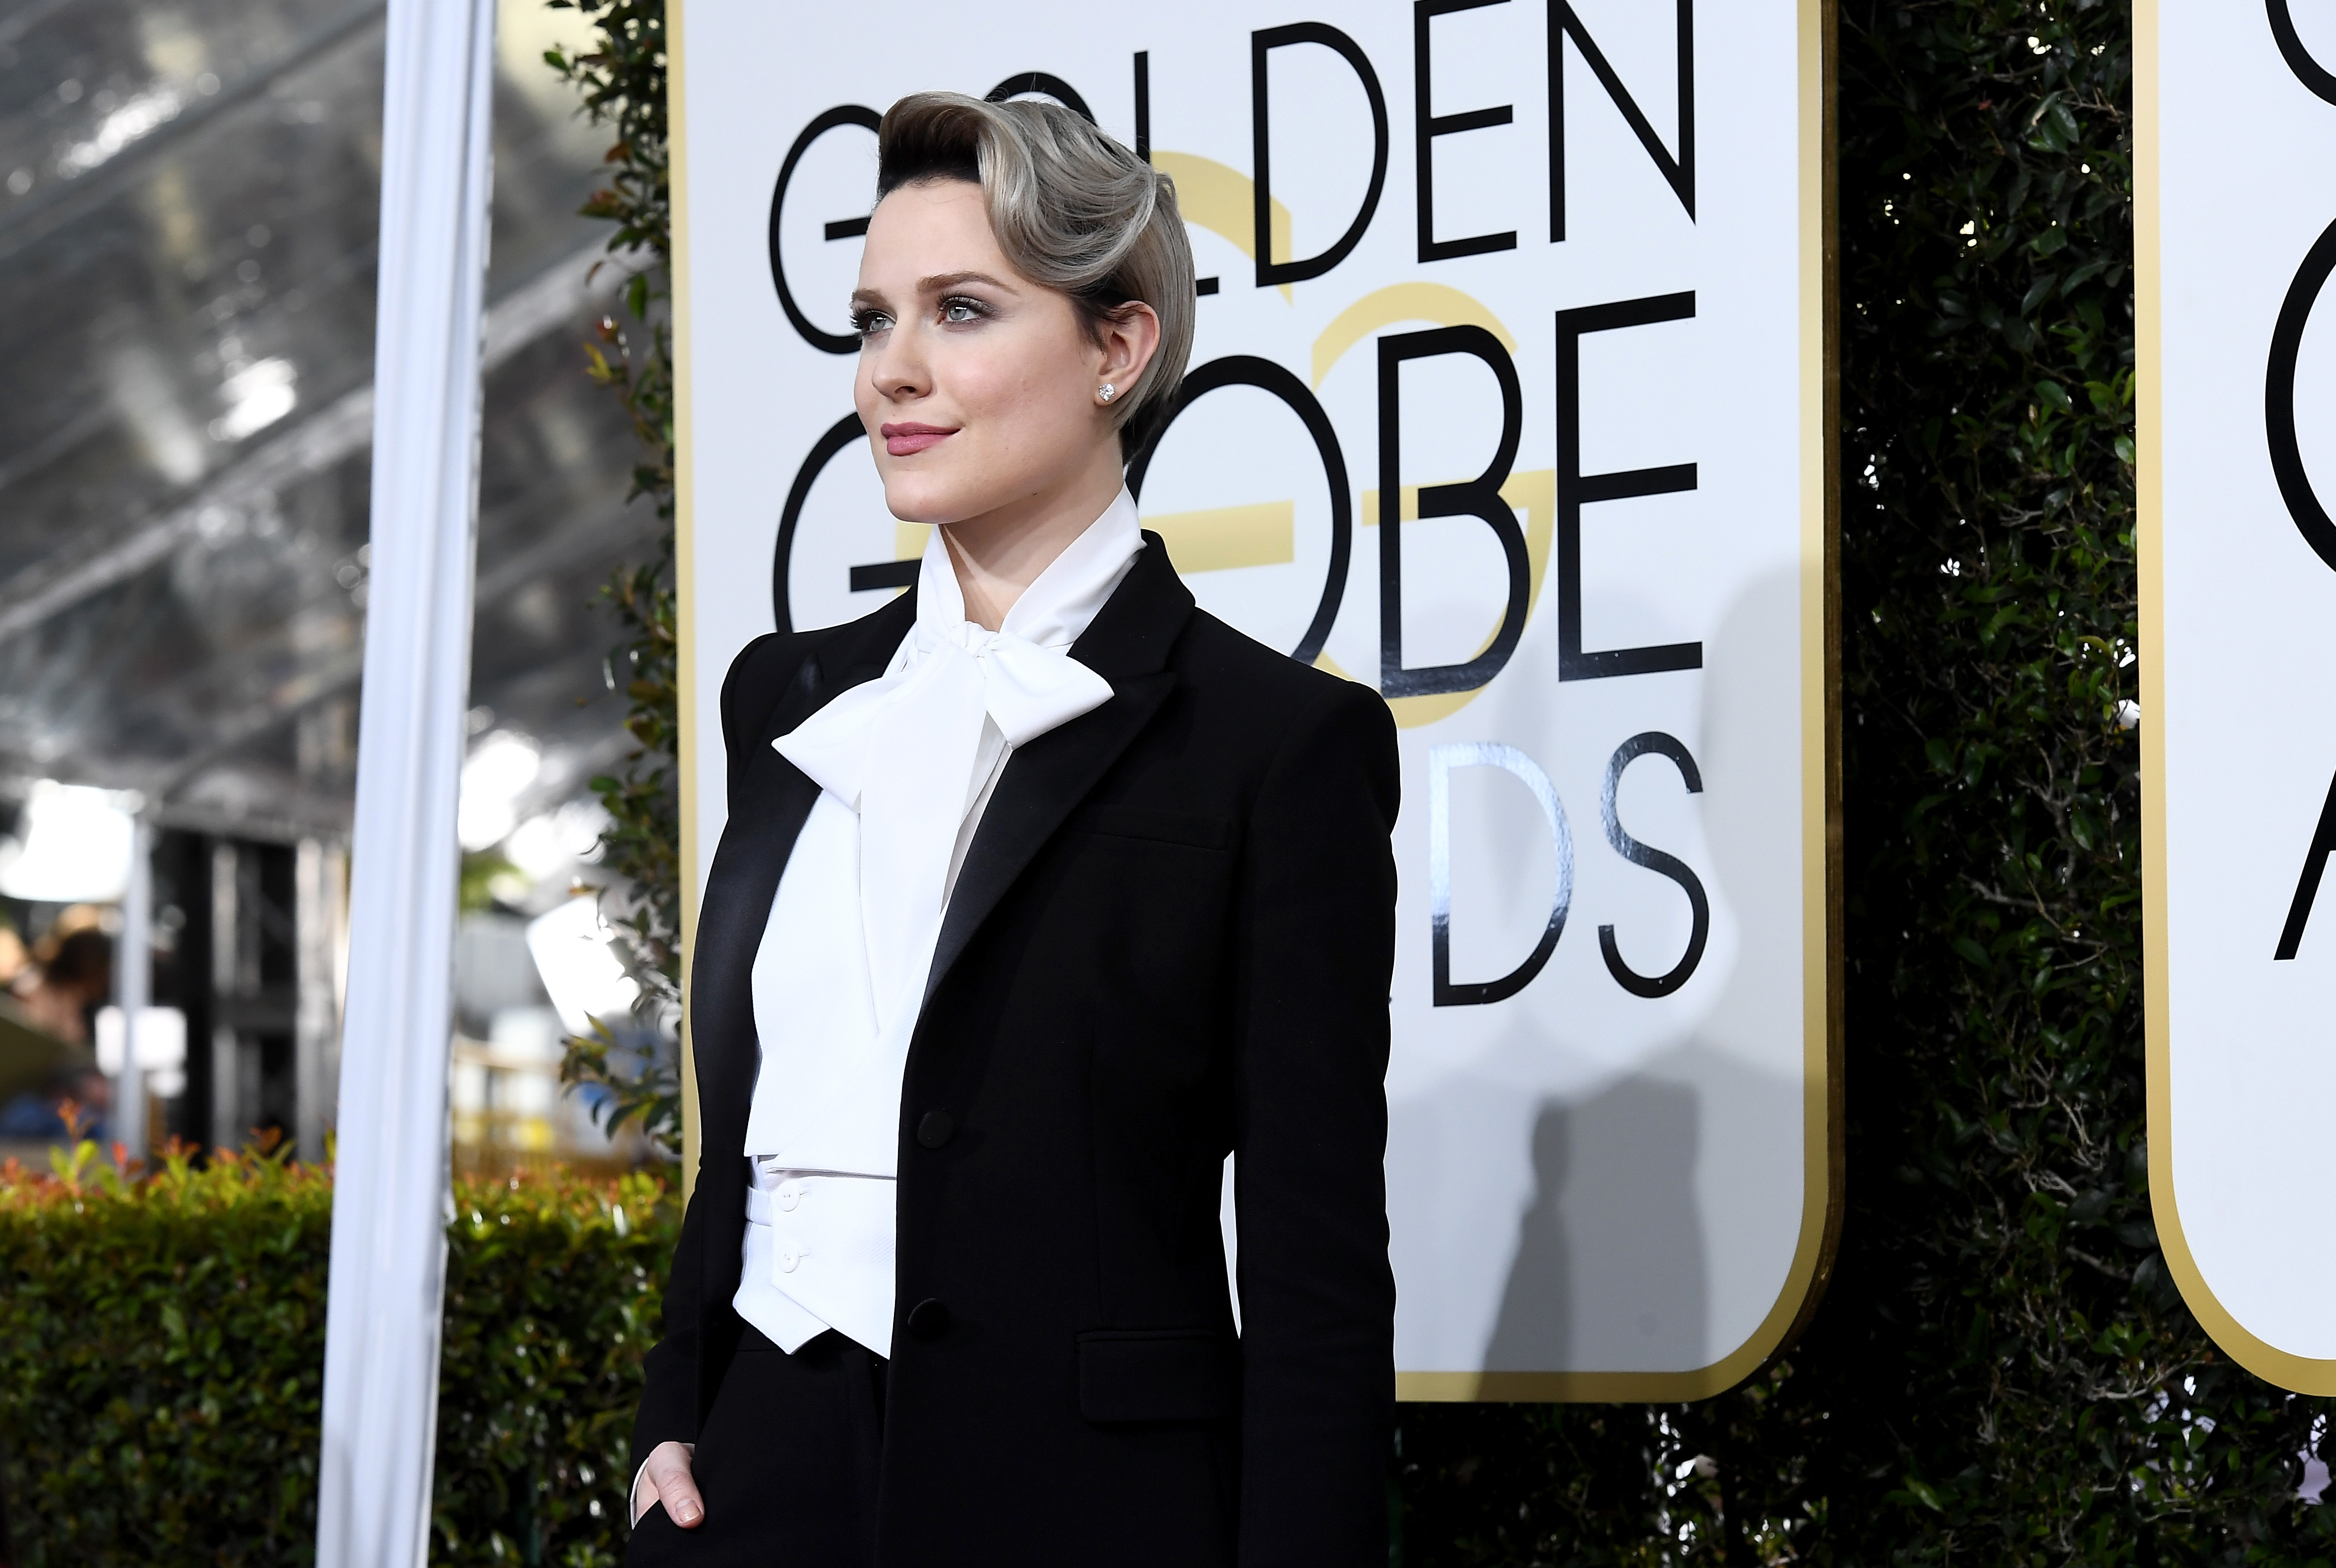 Actress Evan Rachel Wood arrives to the 74th Annual Golden Globe Awards held at the Beverly Hilton Hotel in Beverly Hills, Calif., on Jan. 8, 2017